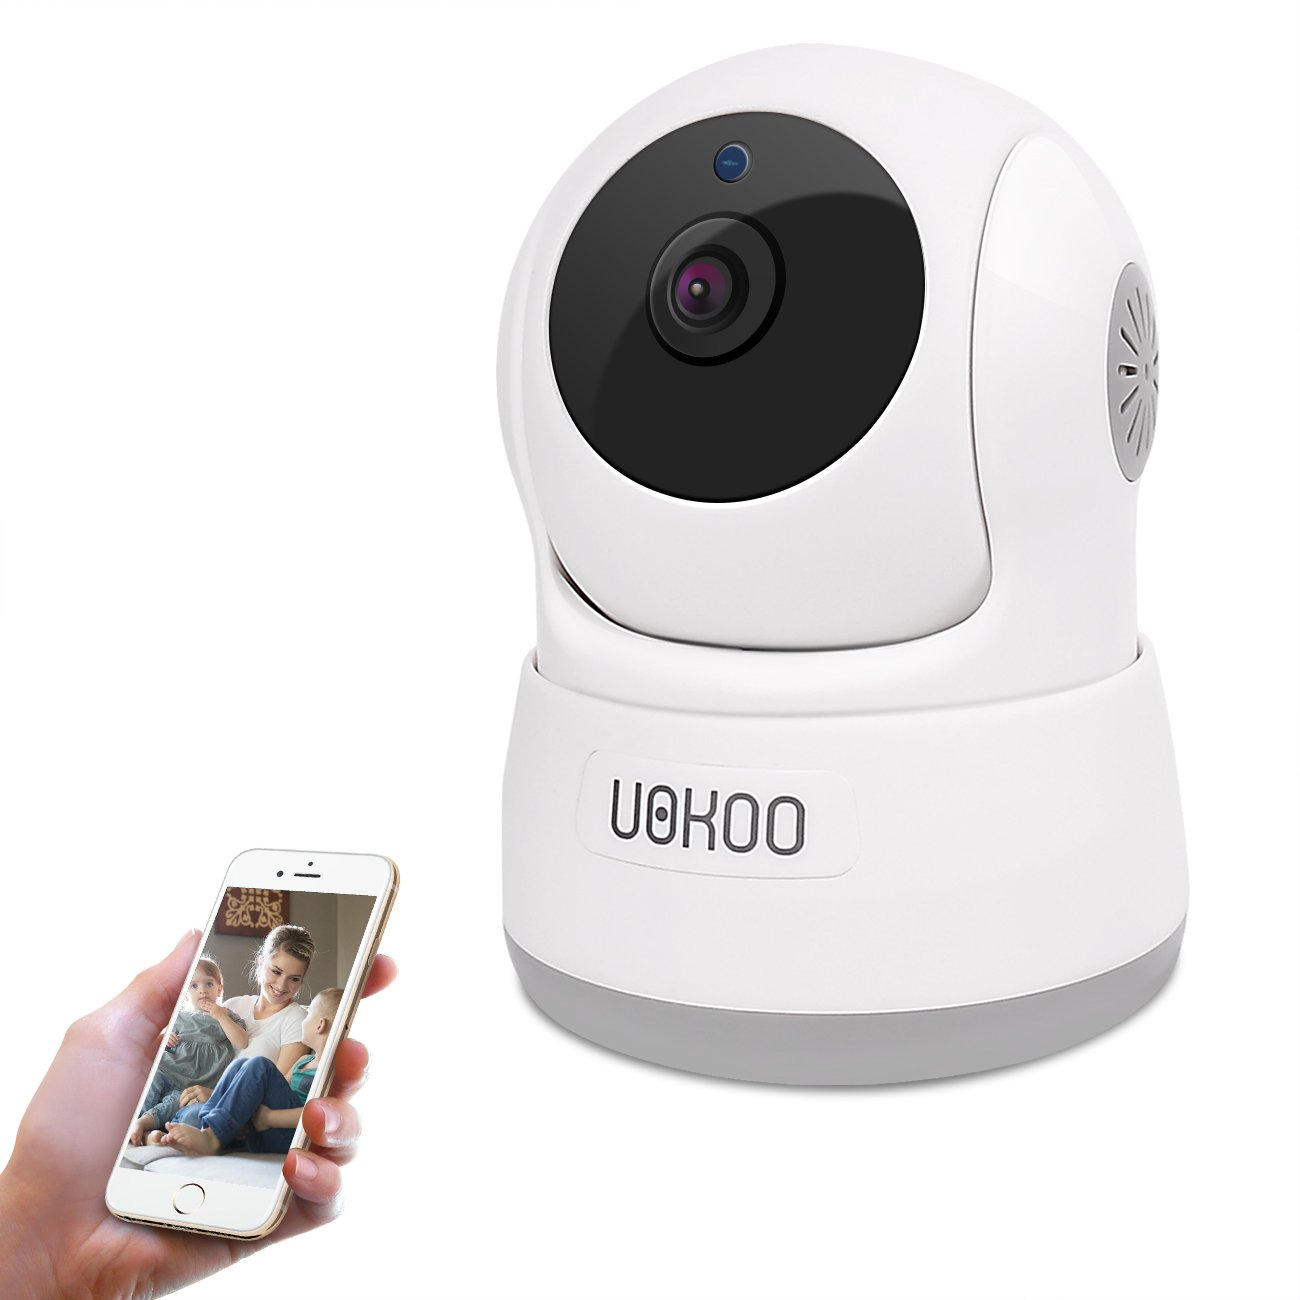 Wireless Security Camera, UOKOO 1280x720p HD Home WiFi Wireless Security Surveillance Camera Wireless IP Camera with Pan/Tilt/Two Way Audio, Night Vision Wireless Camera, Nanny Cam